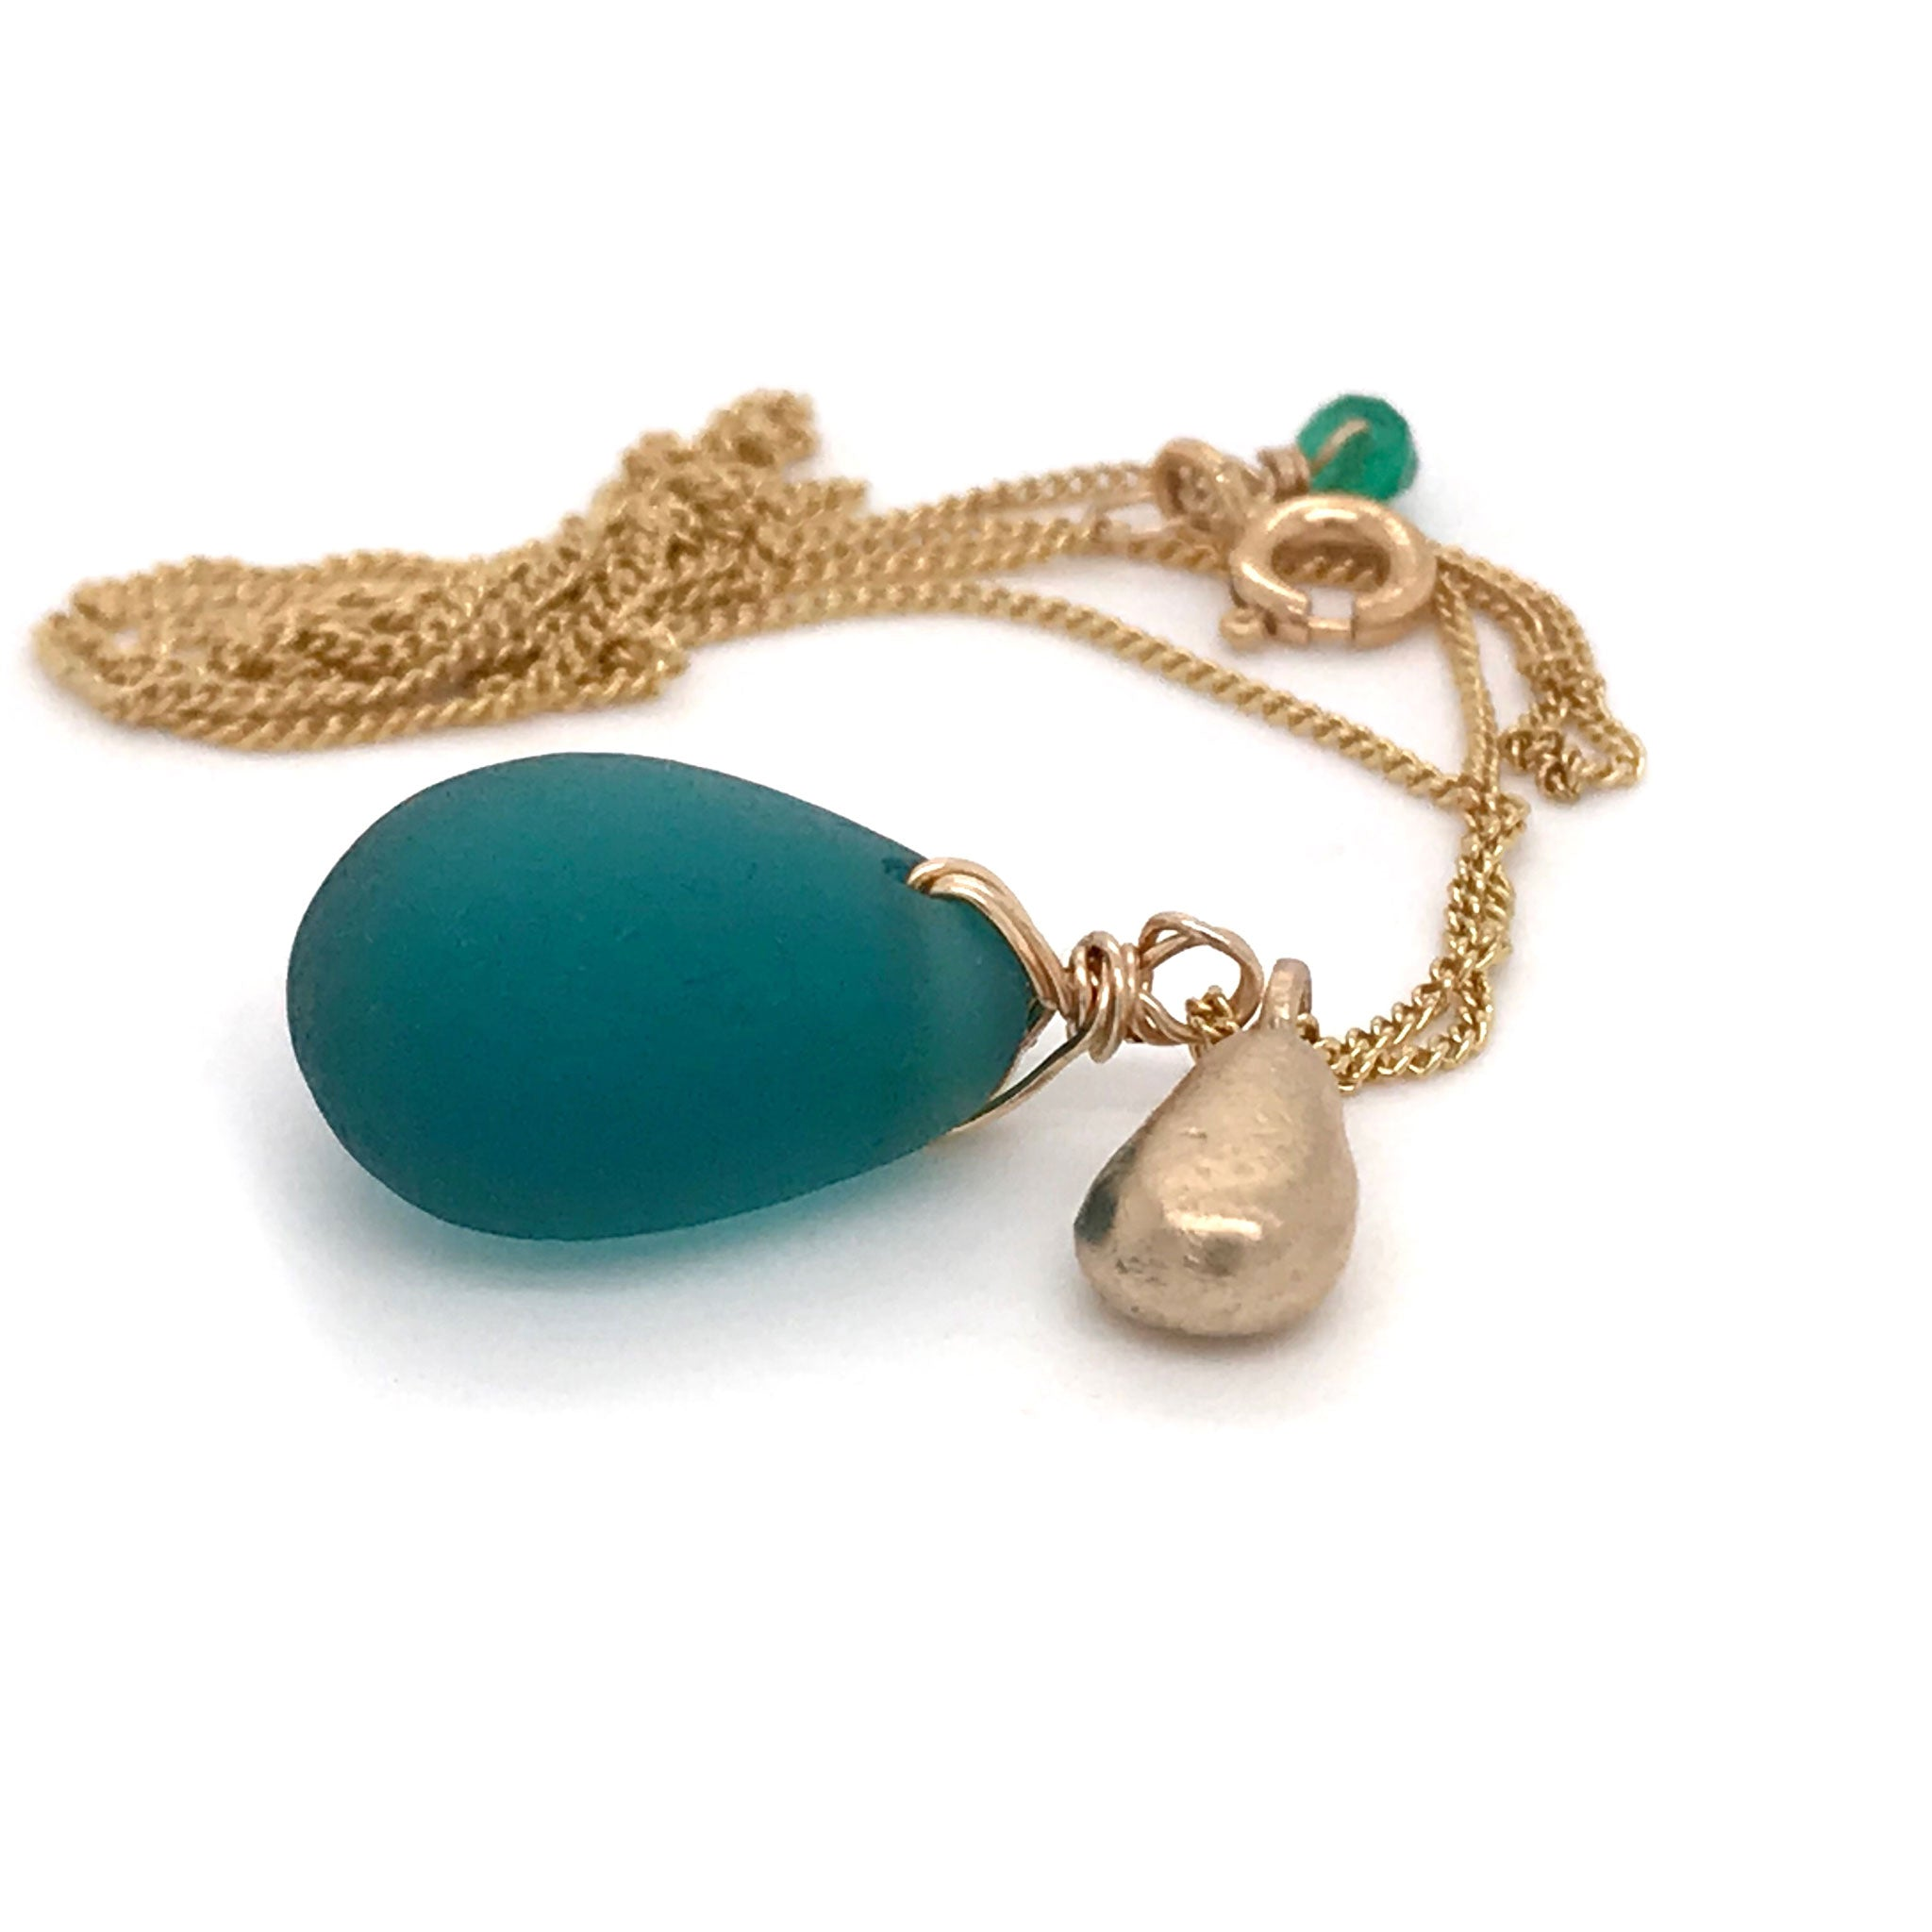 teal seaglass necklace on fine gold chain with solid 14k gold teardrop charm Kriket Broadhurst jewelry